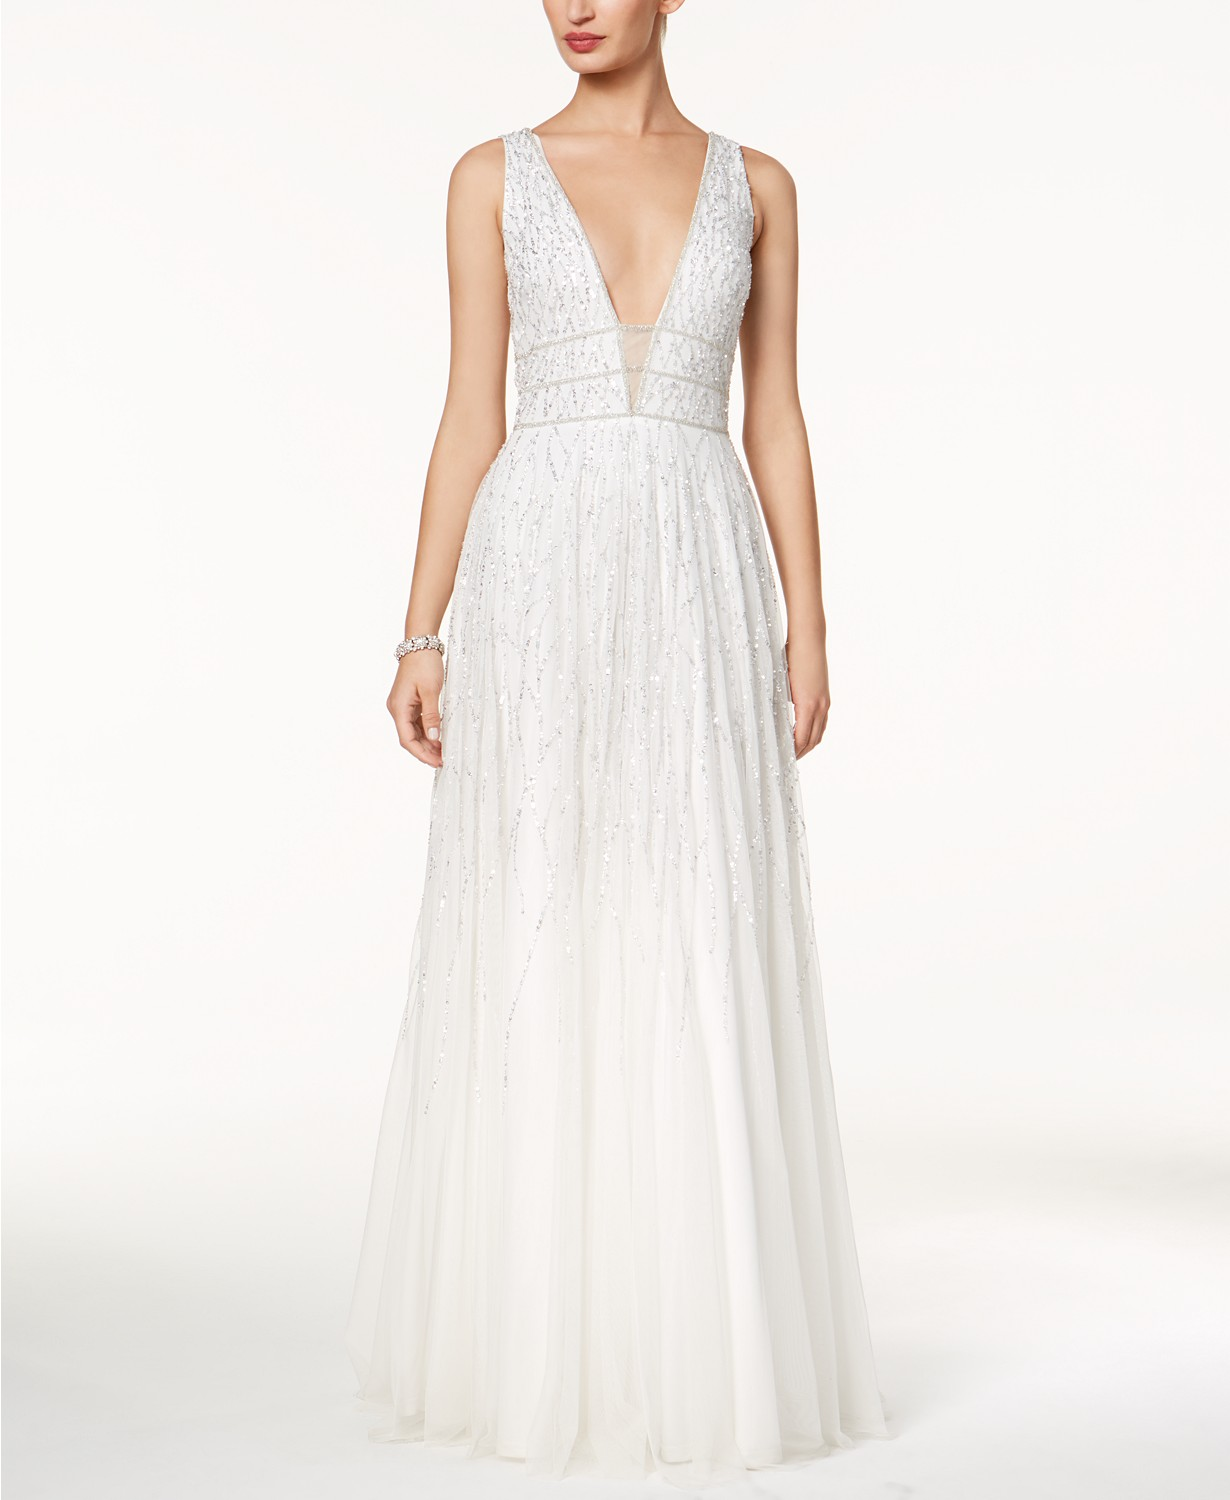 Adrianna Papell beaded wedding dress